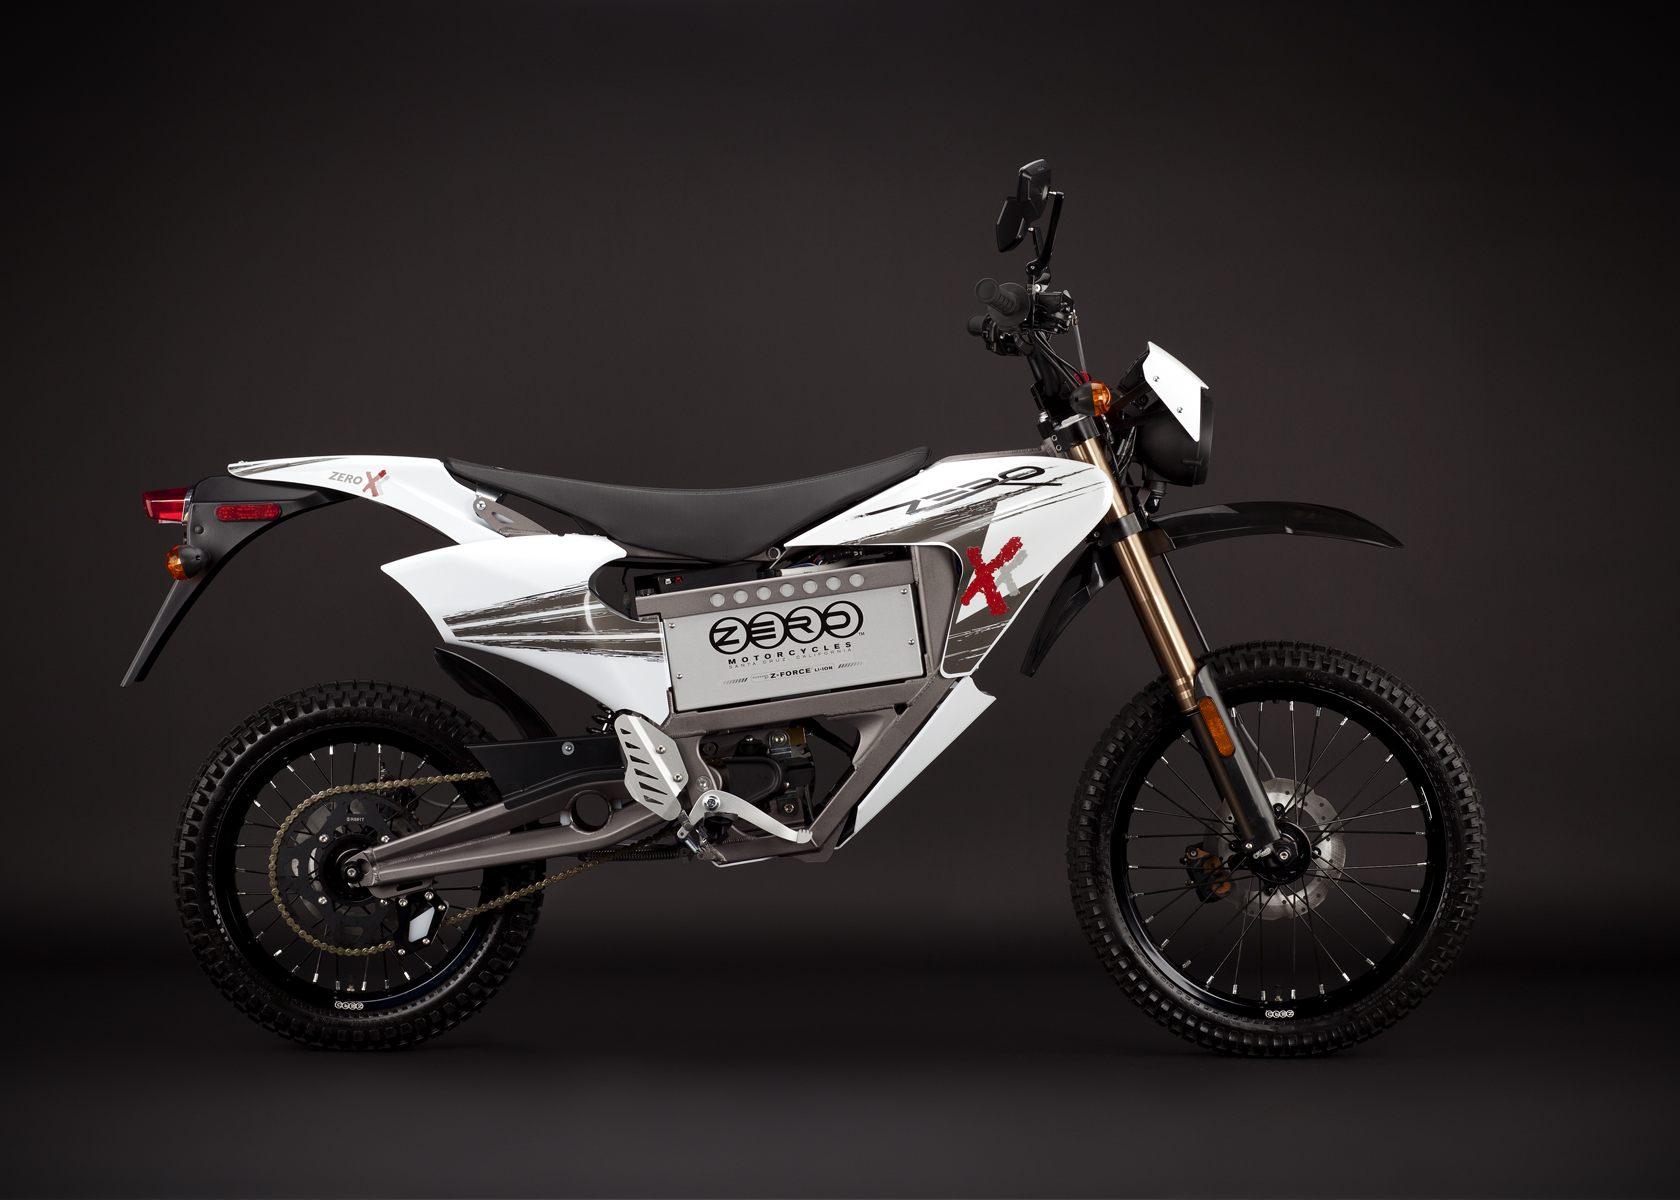 2011 Zero X Electric Motorcycle: Profile Right, Street Legal Model